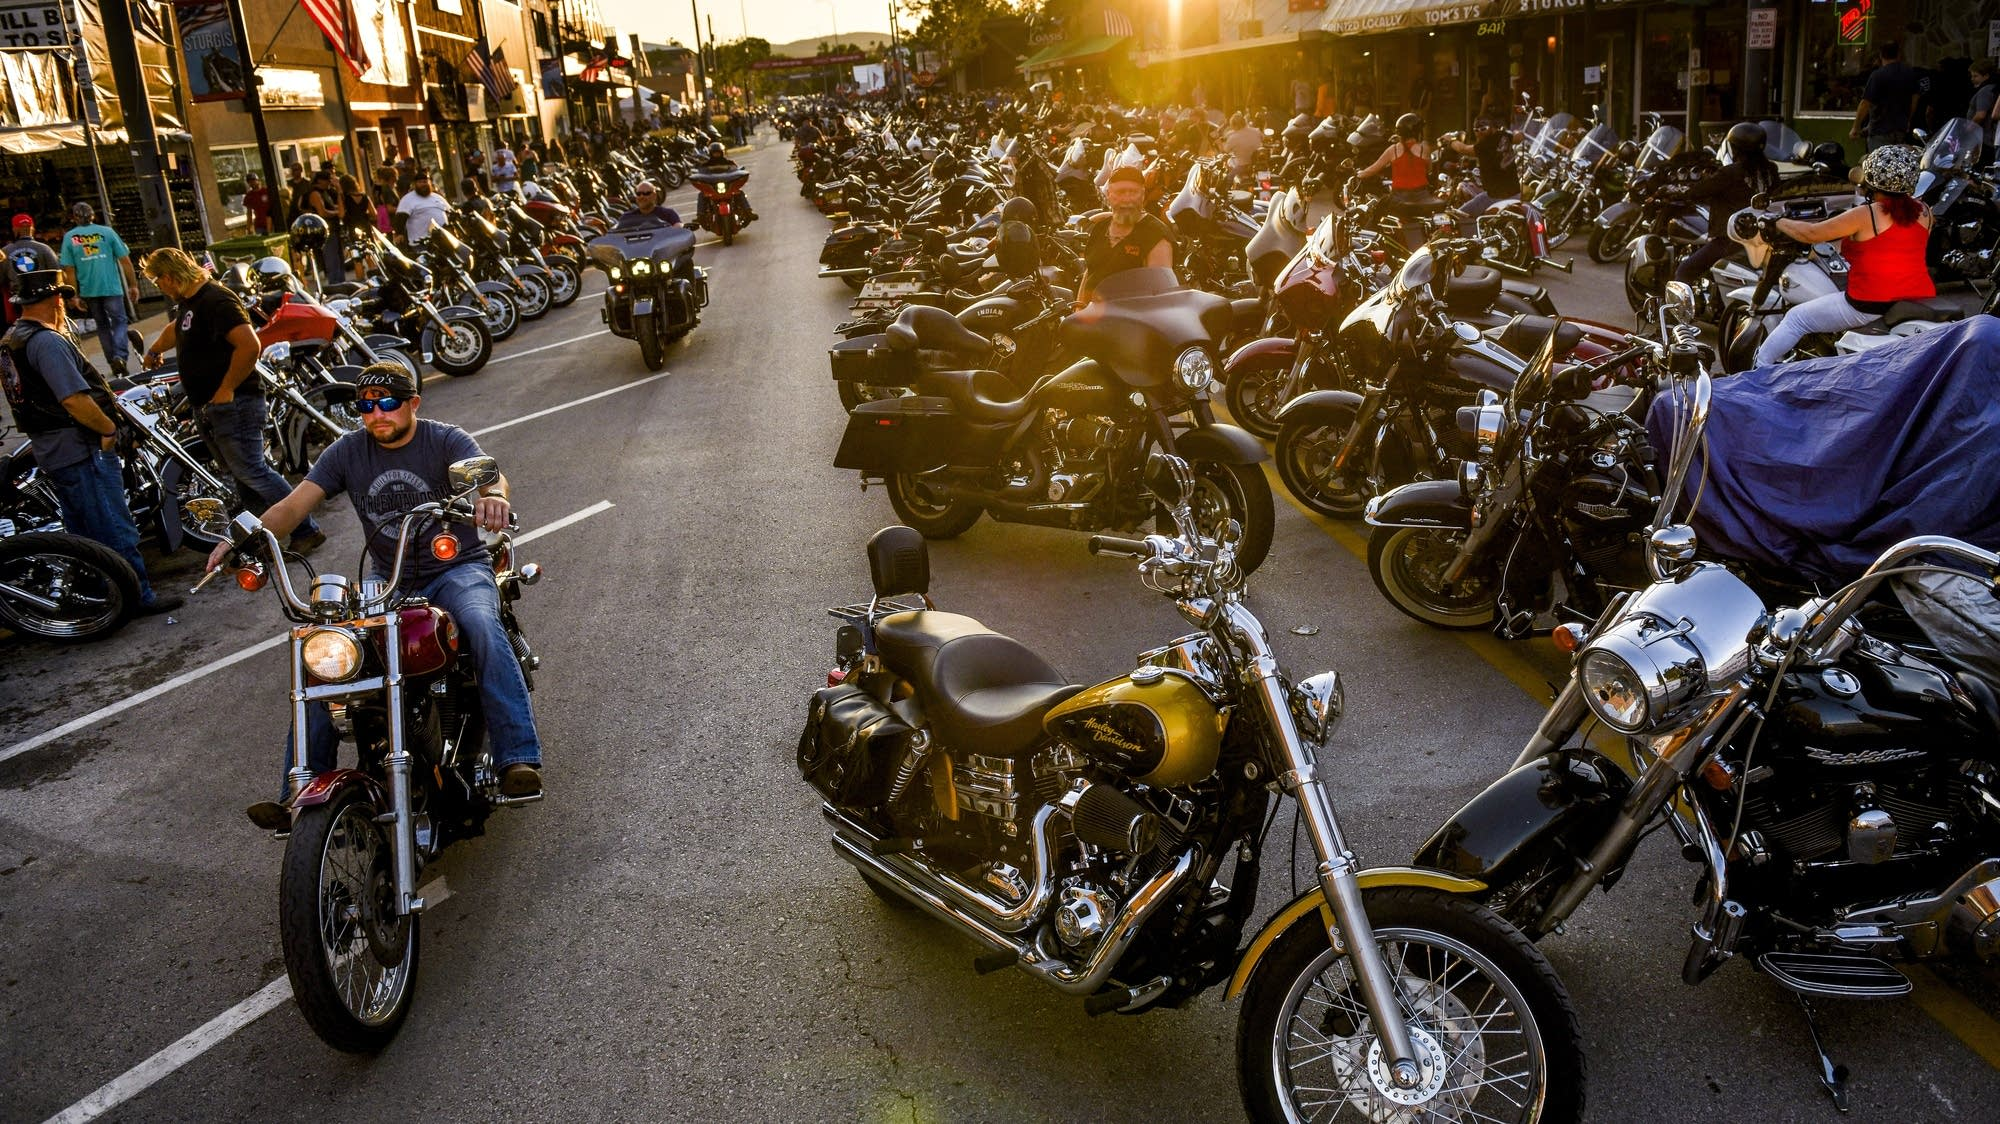 2018 Sturgis Mustang Rally: Ponycars Gallop Through the